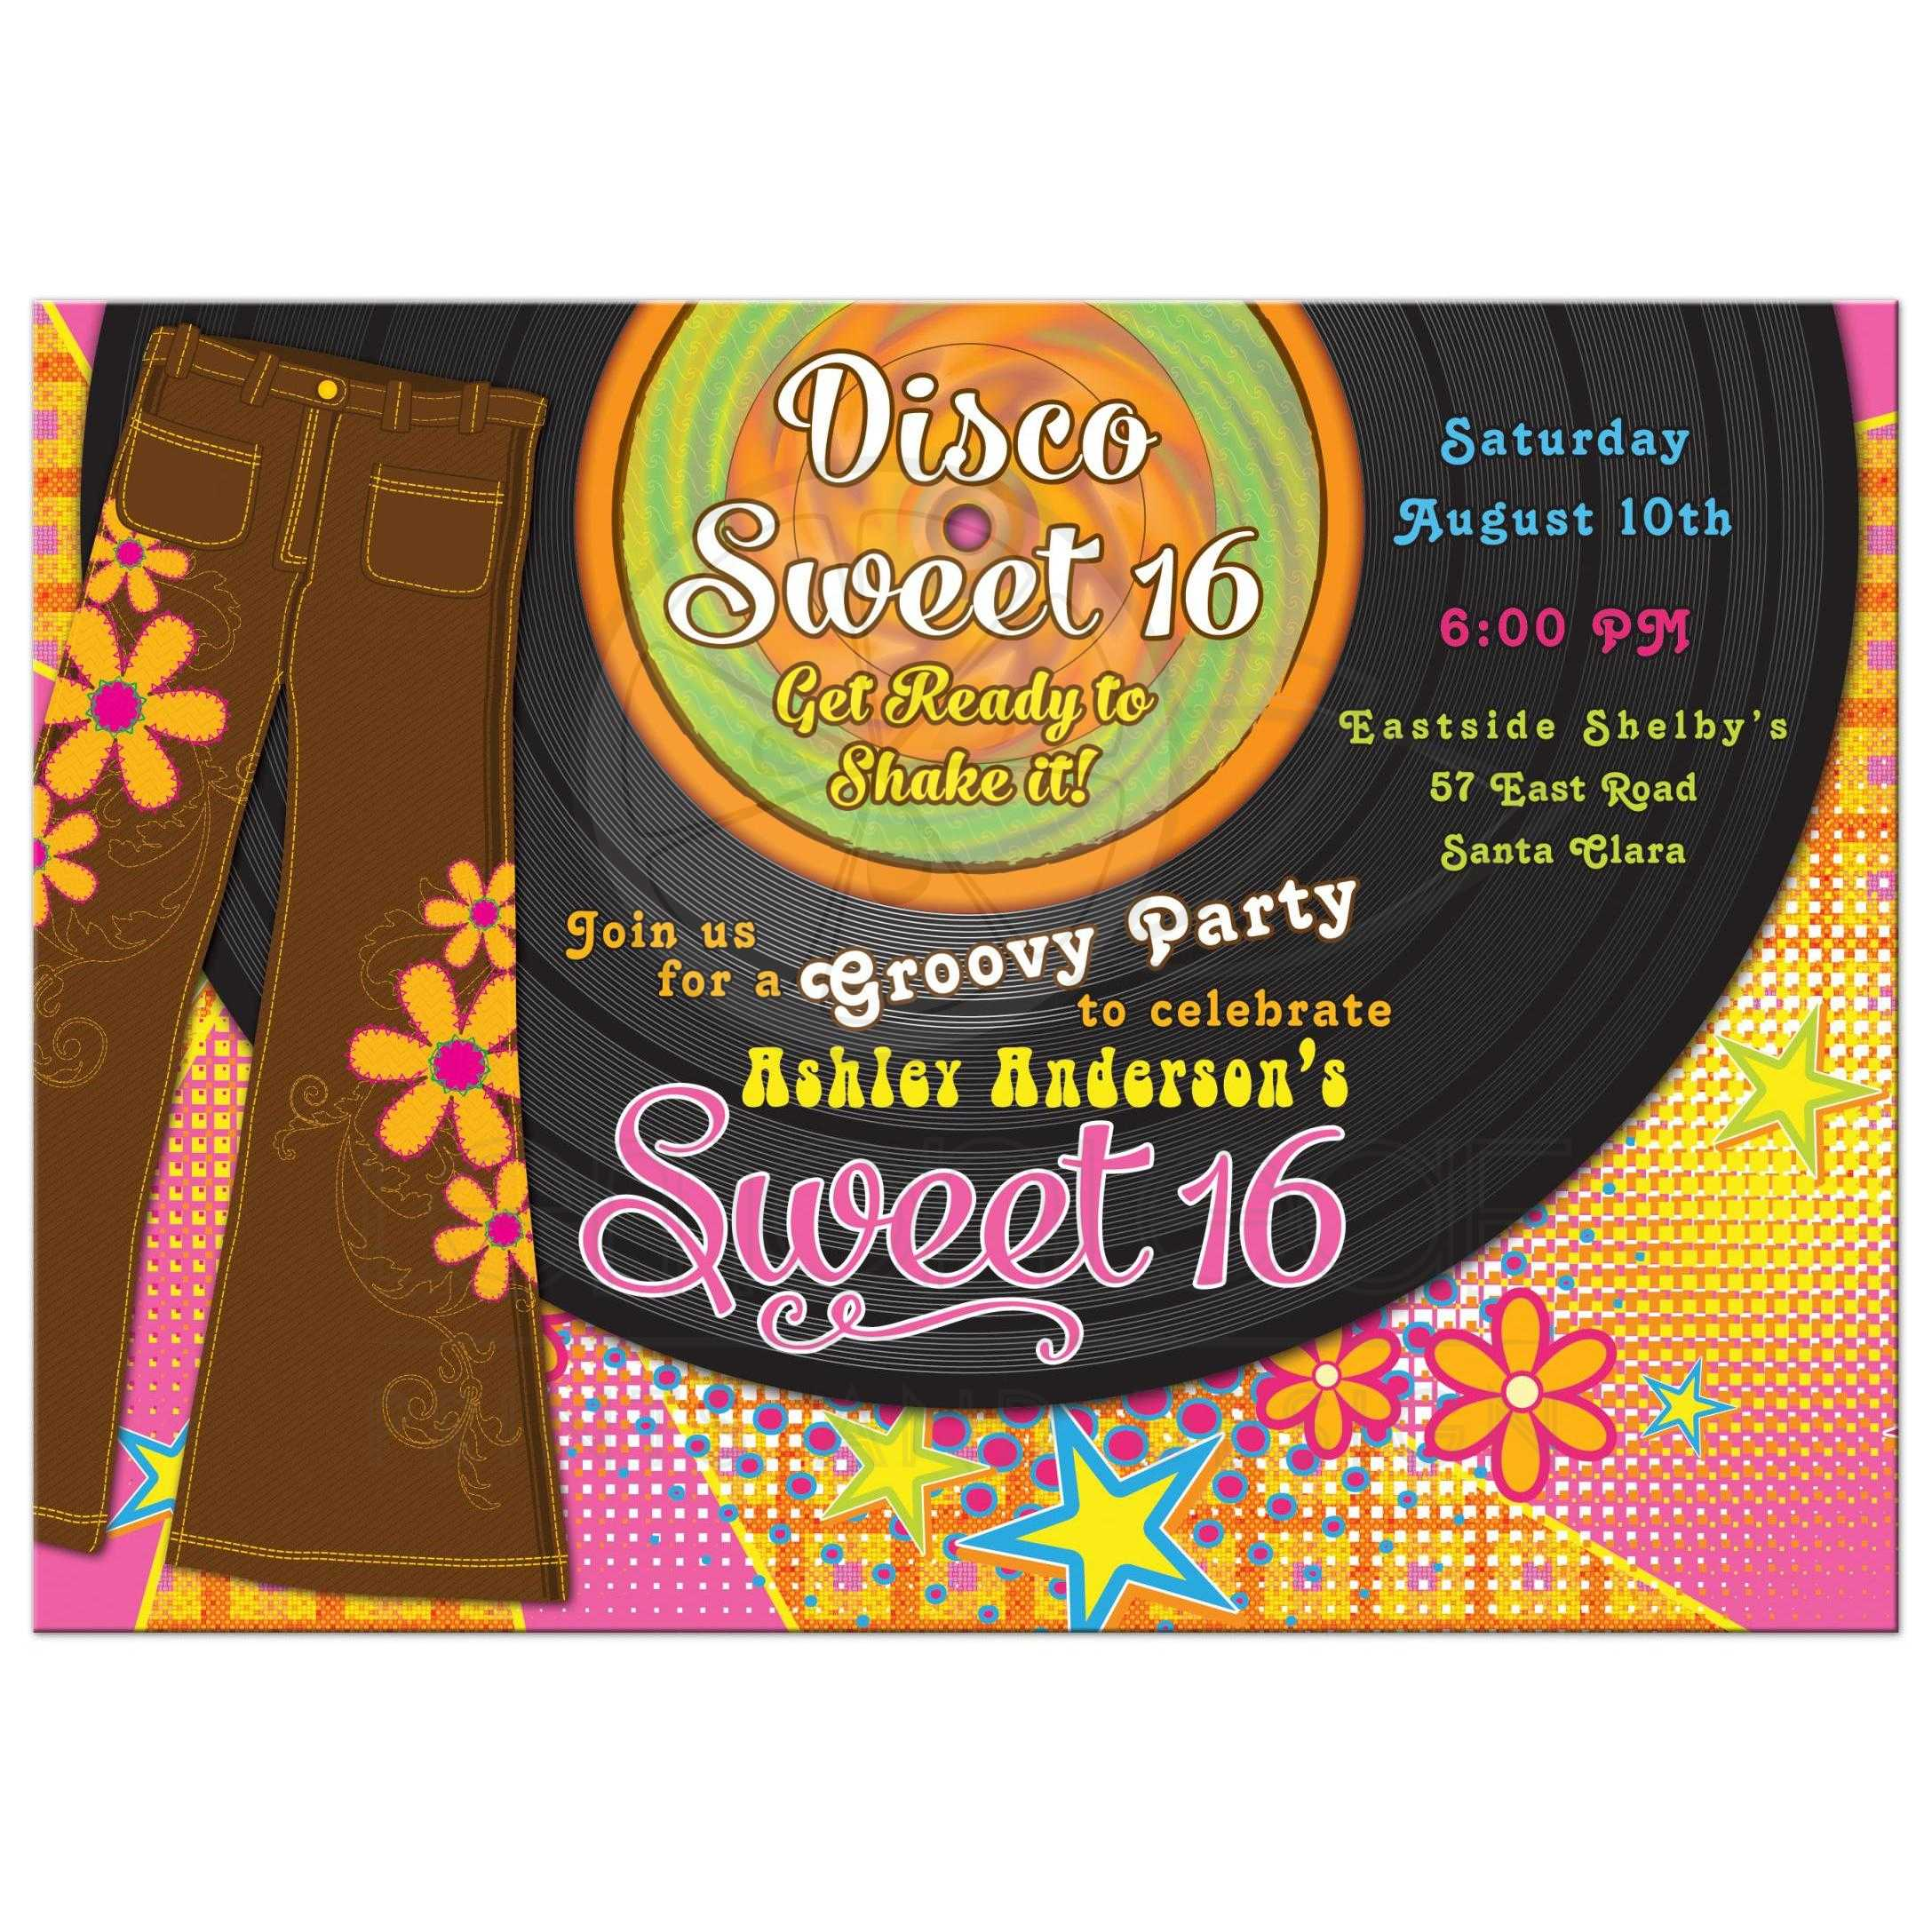 1970s Disco Sweet 16 Invitation | Bellbottoms Record Album